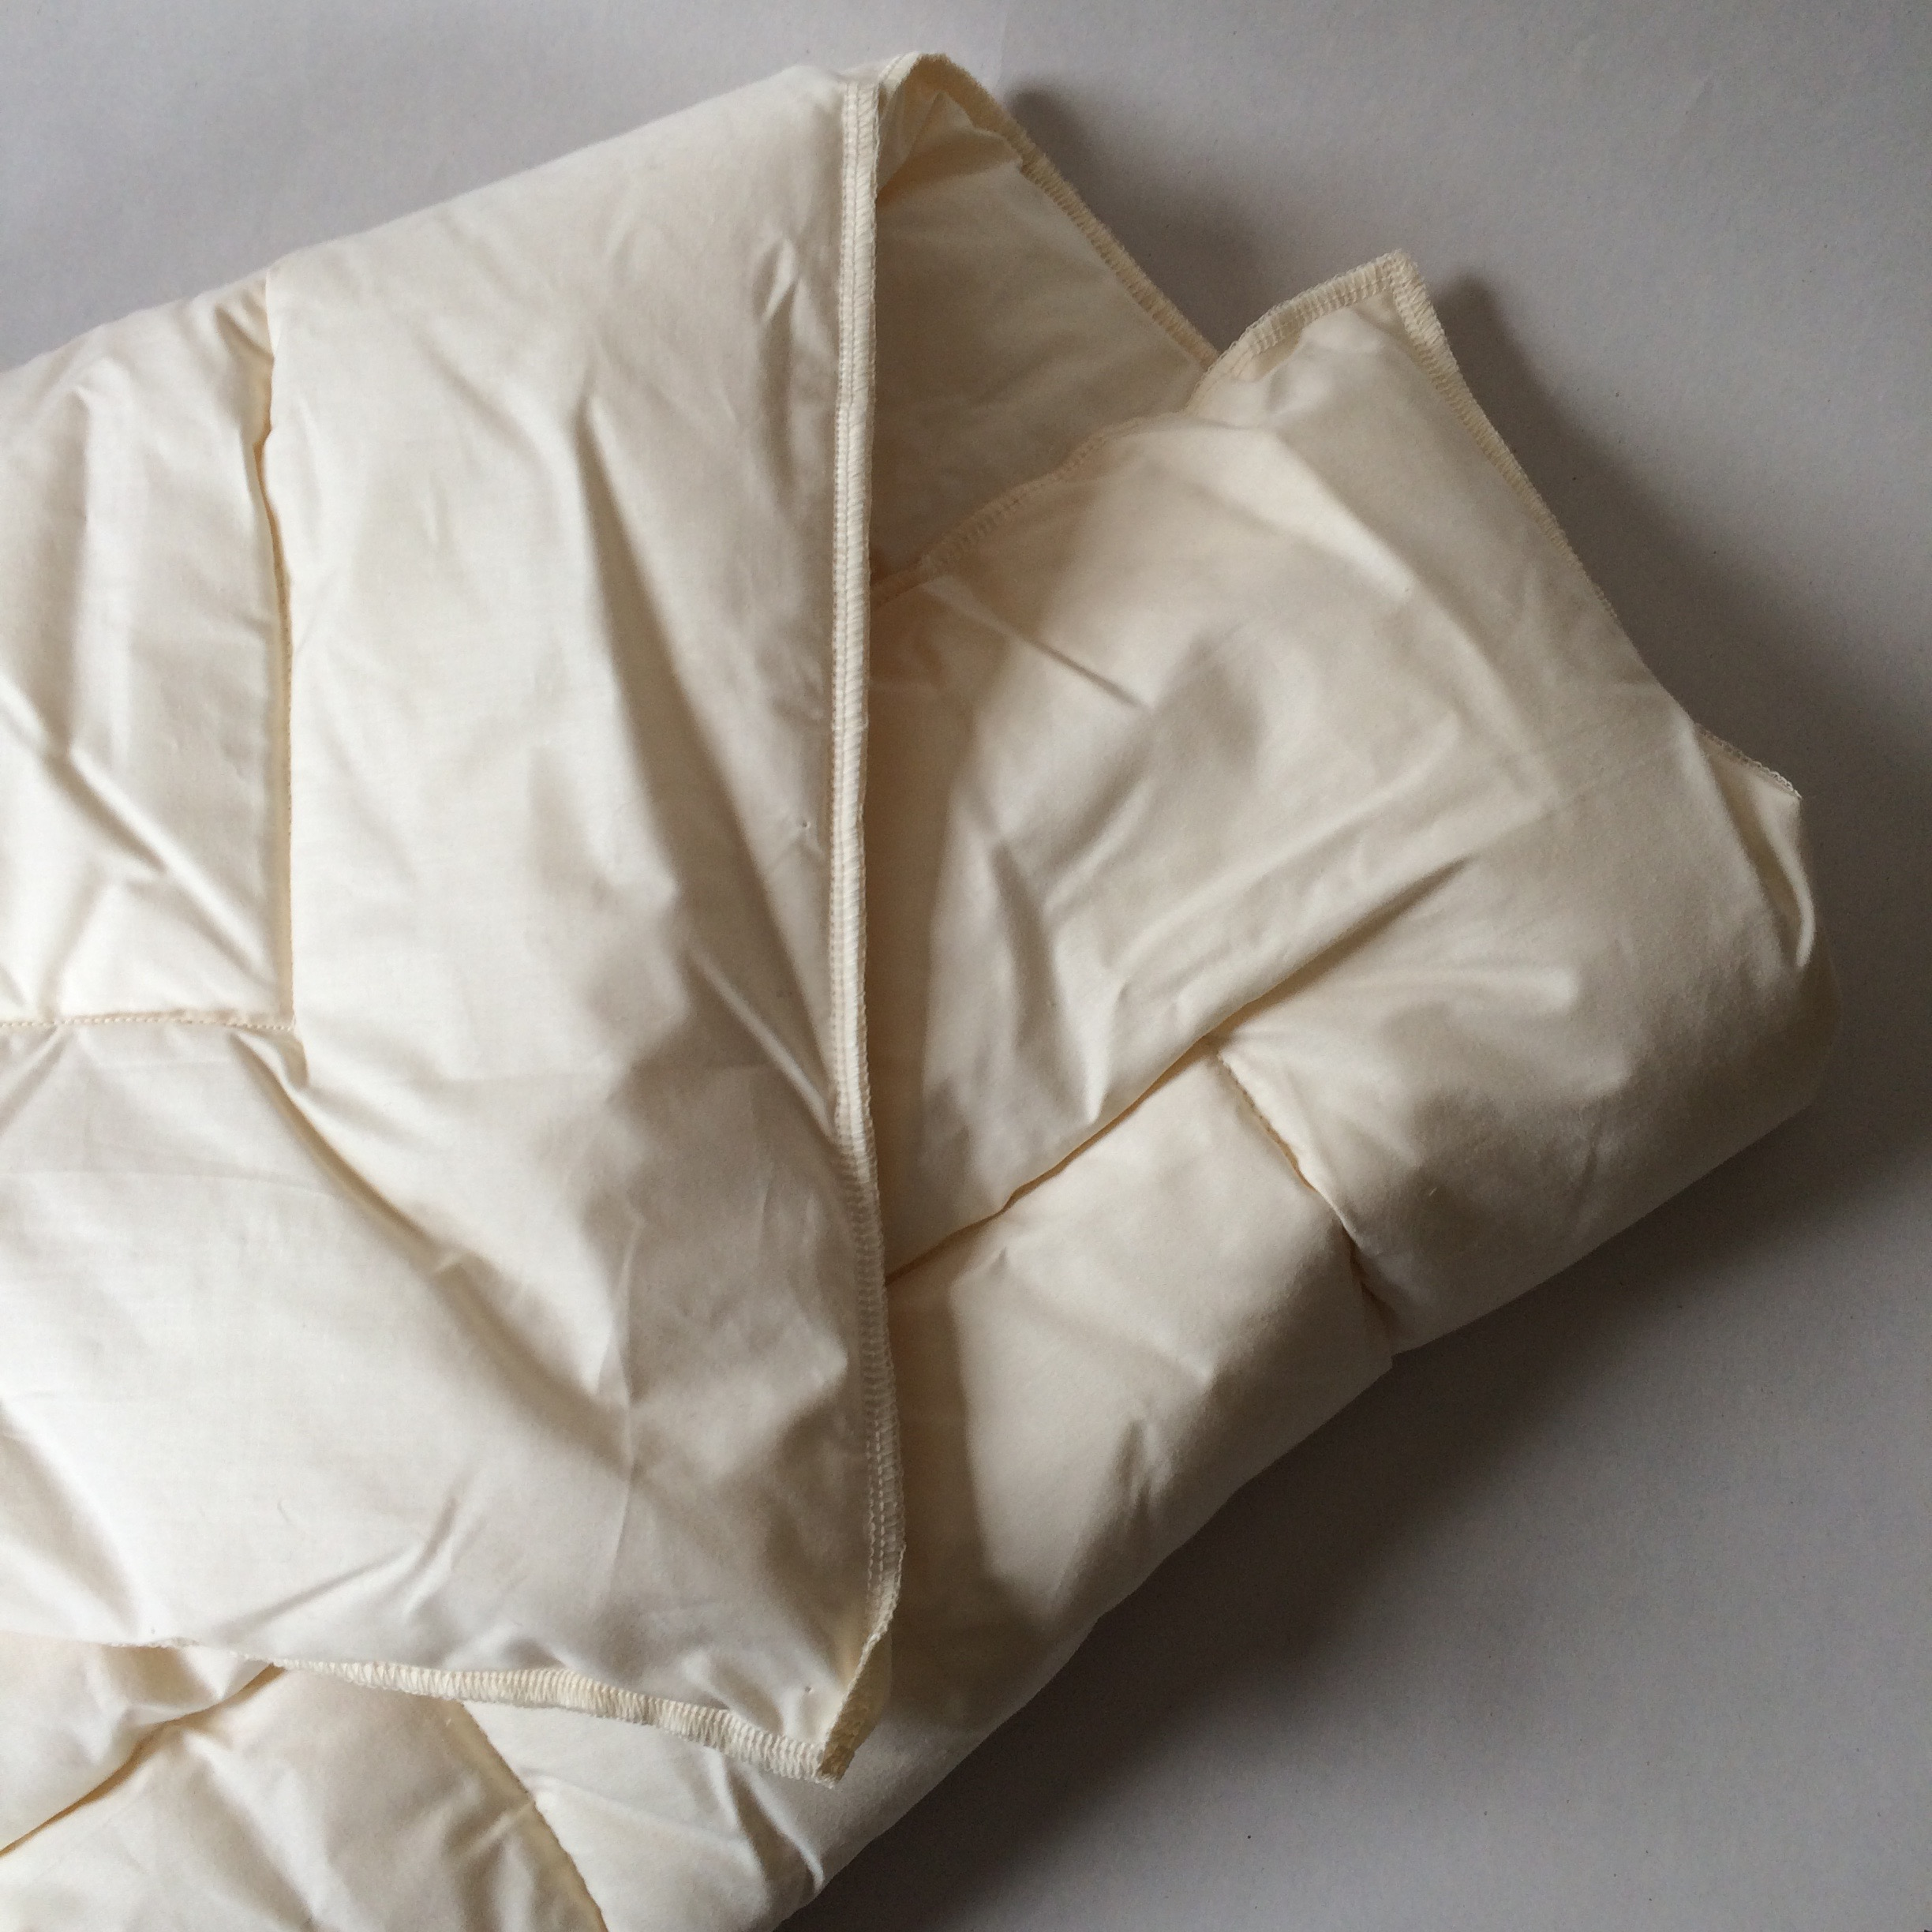 Cozy wool duvets made with our sheeps' wool.